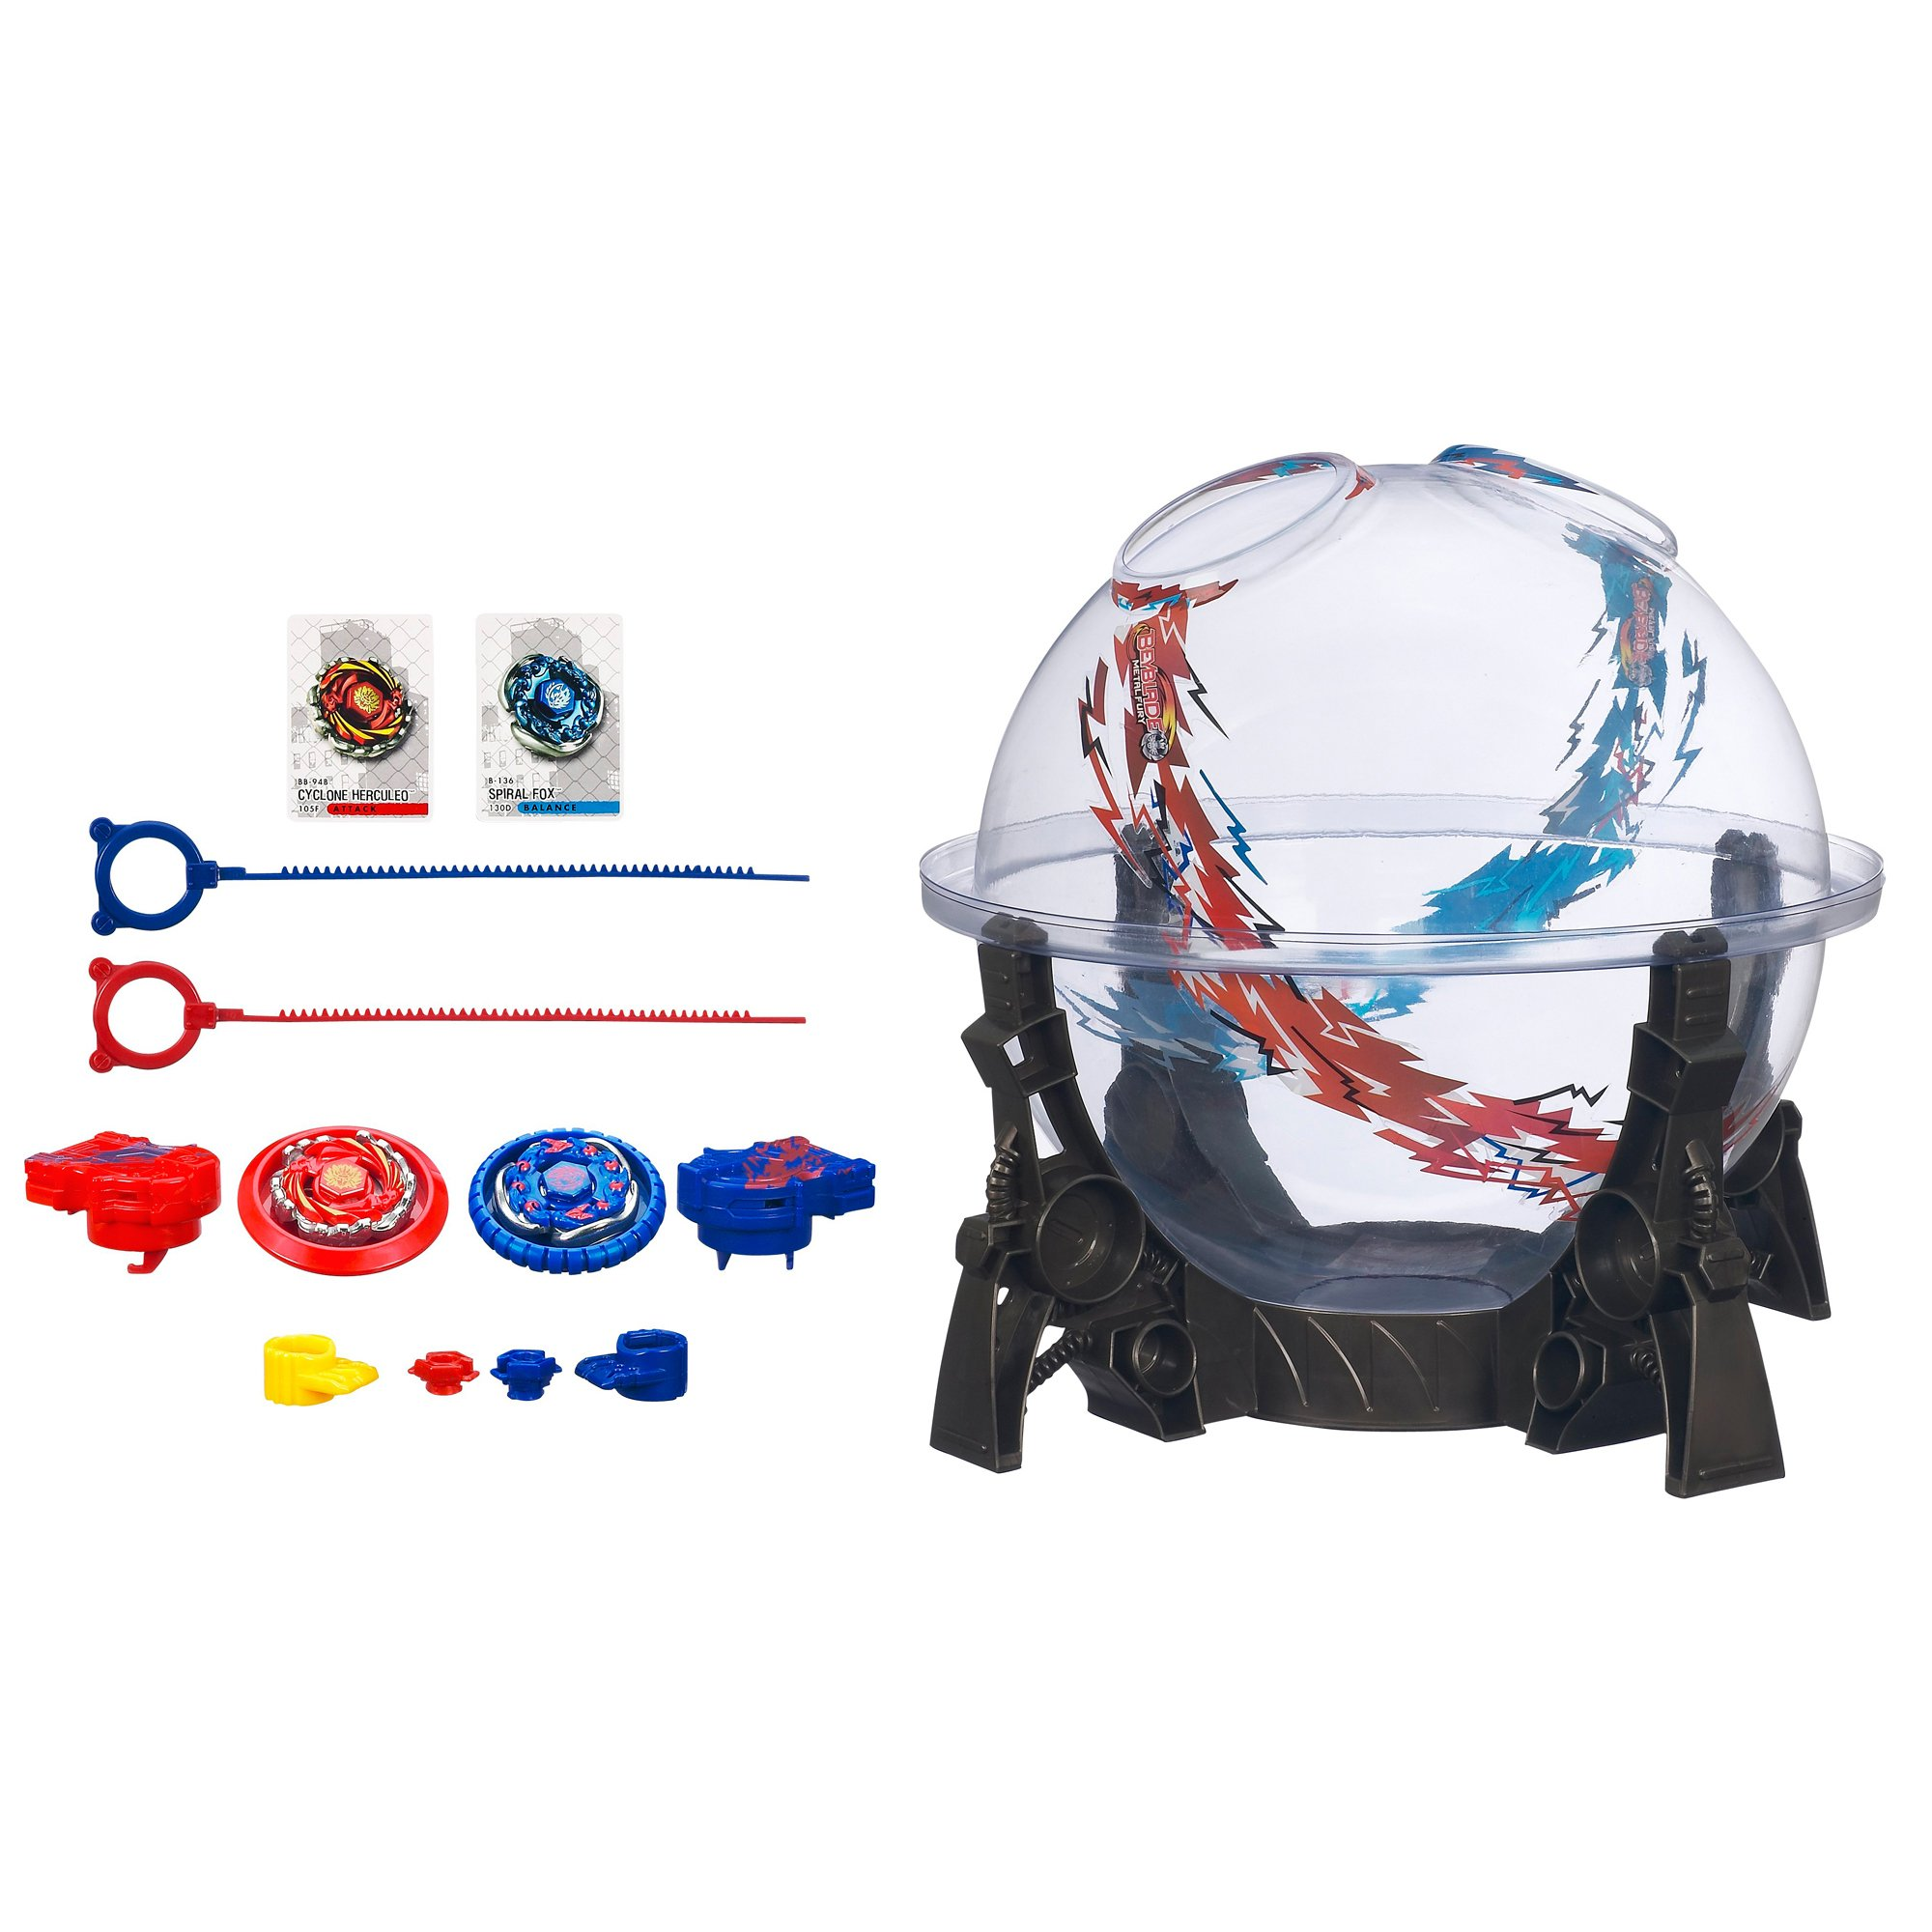 Destroyer Dome Set by Beyblade